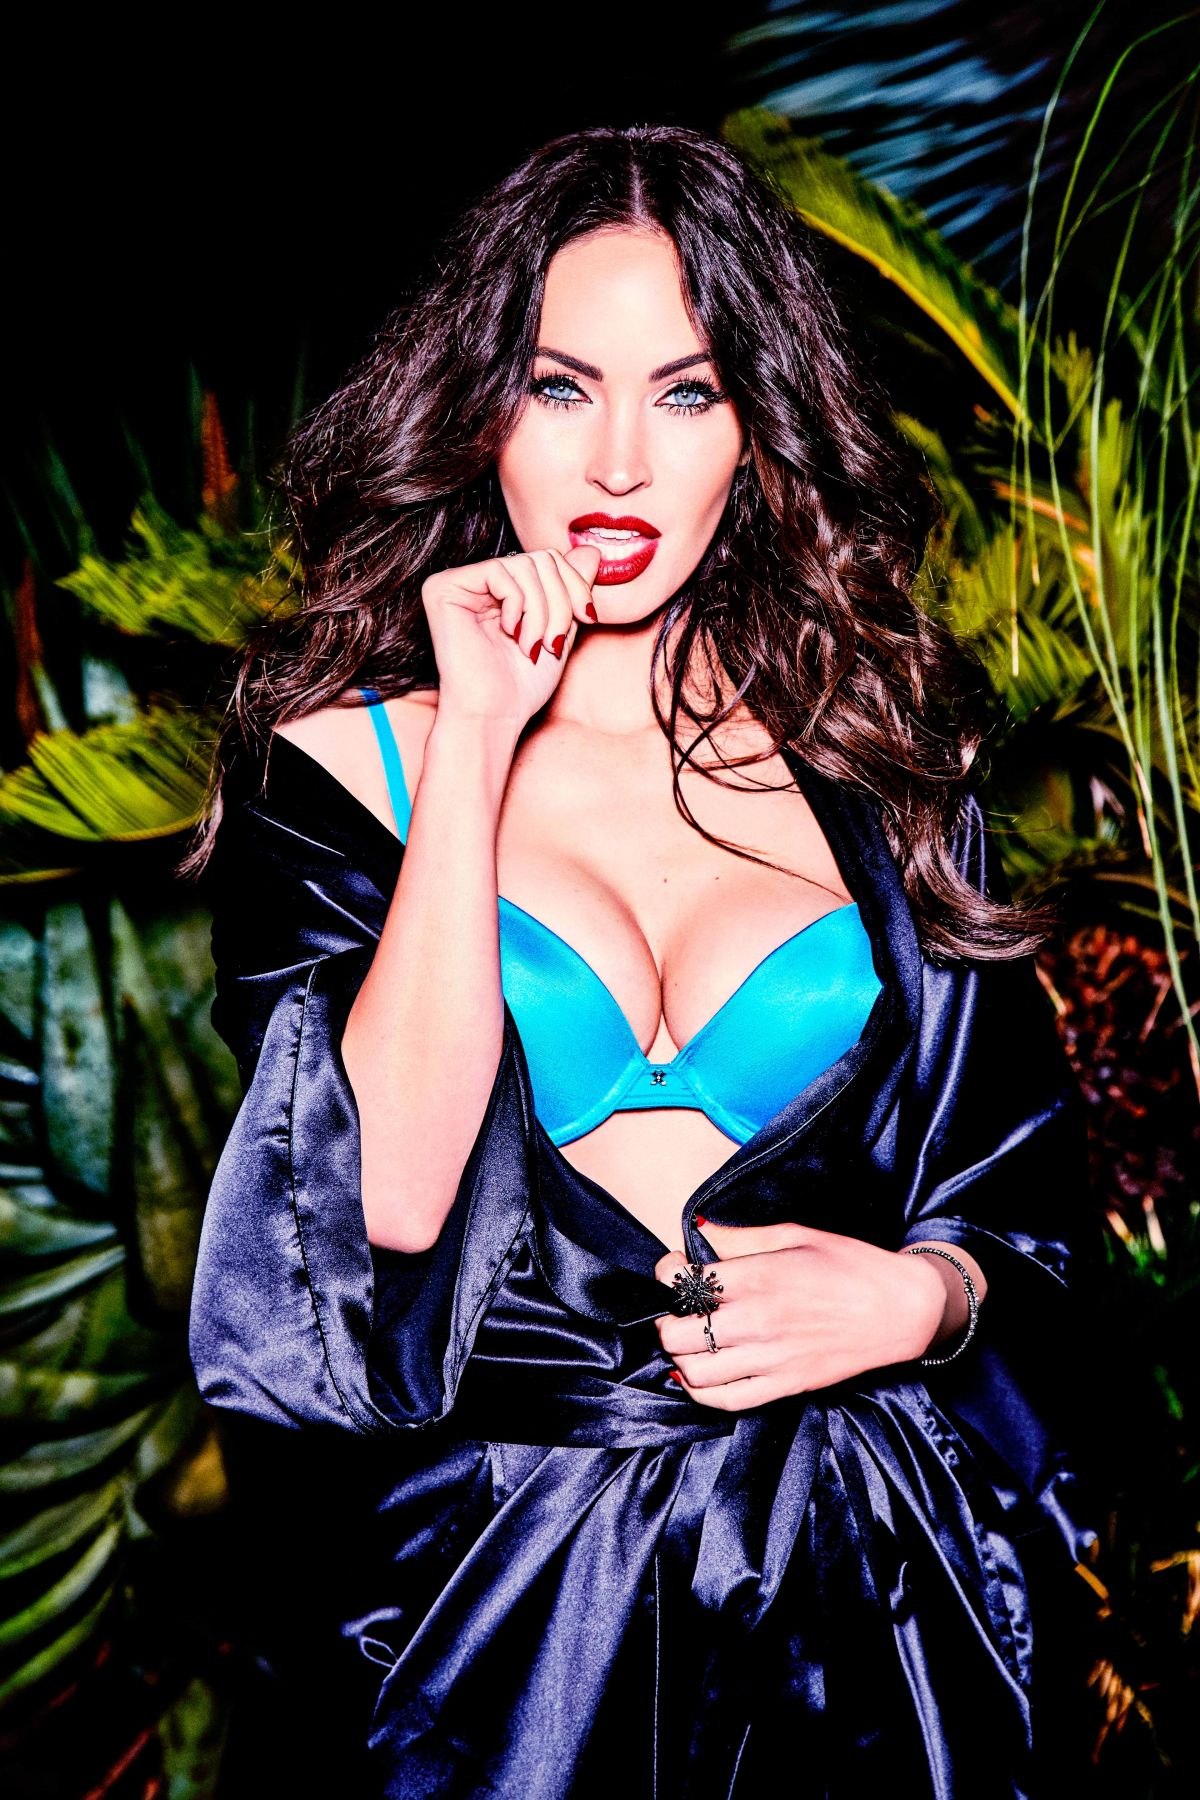 Megan Fox awesome photos